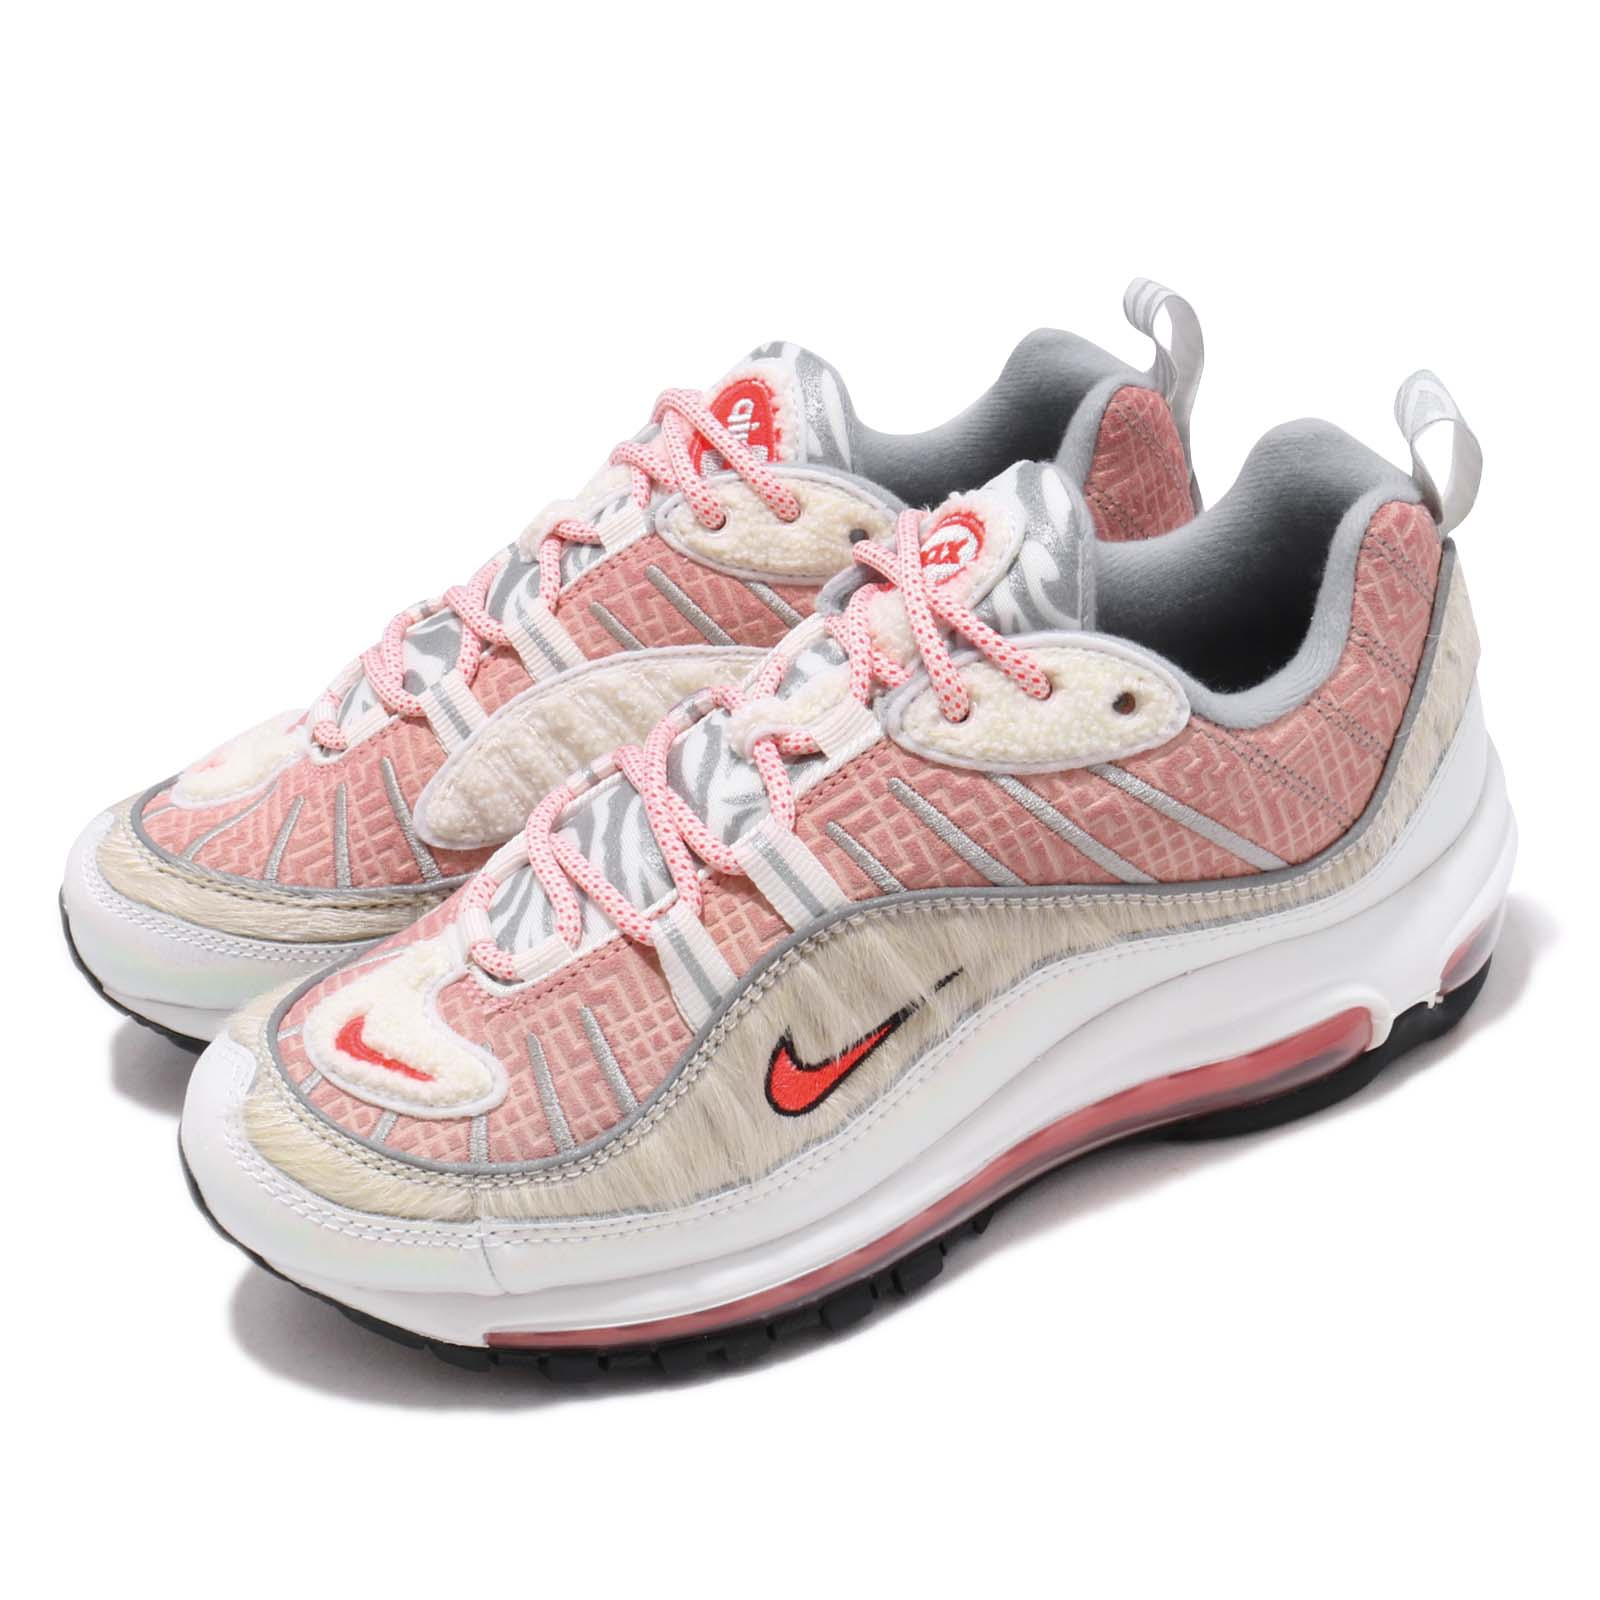 Nike WMNS Air Max 98 CNY Chinese New Year BV6653 616 Release